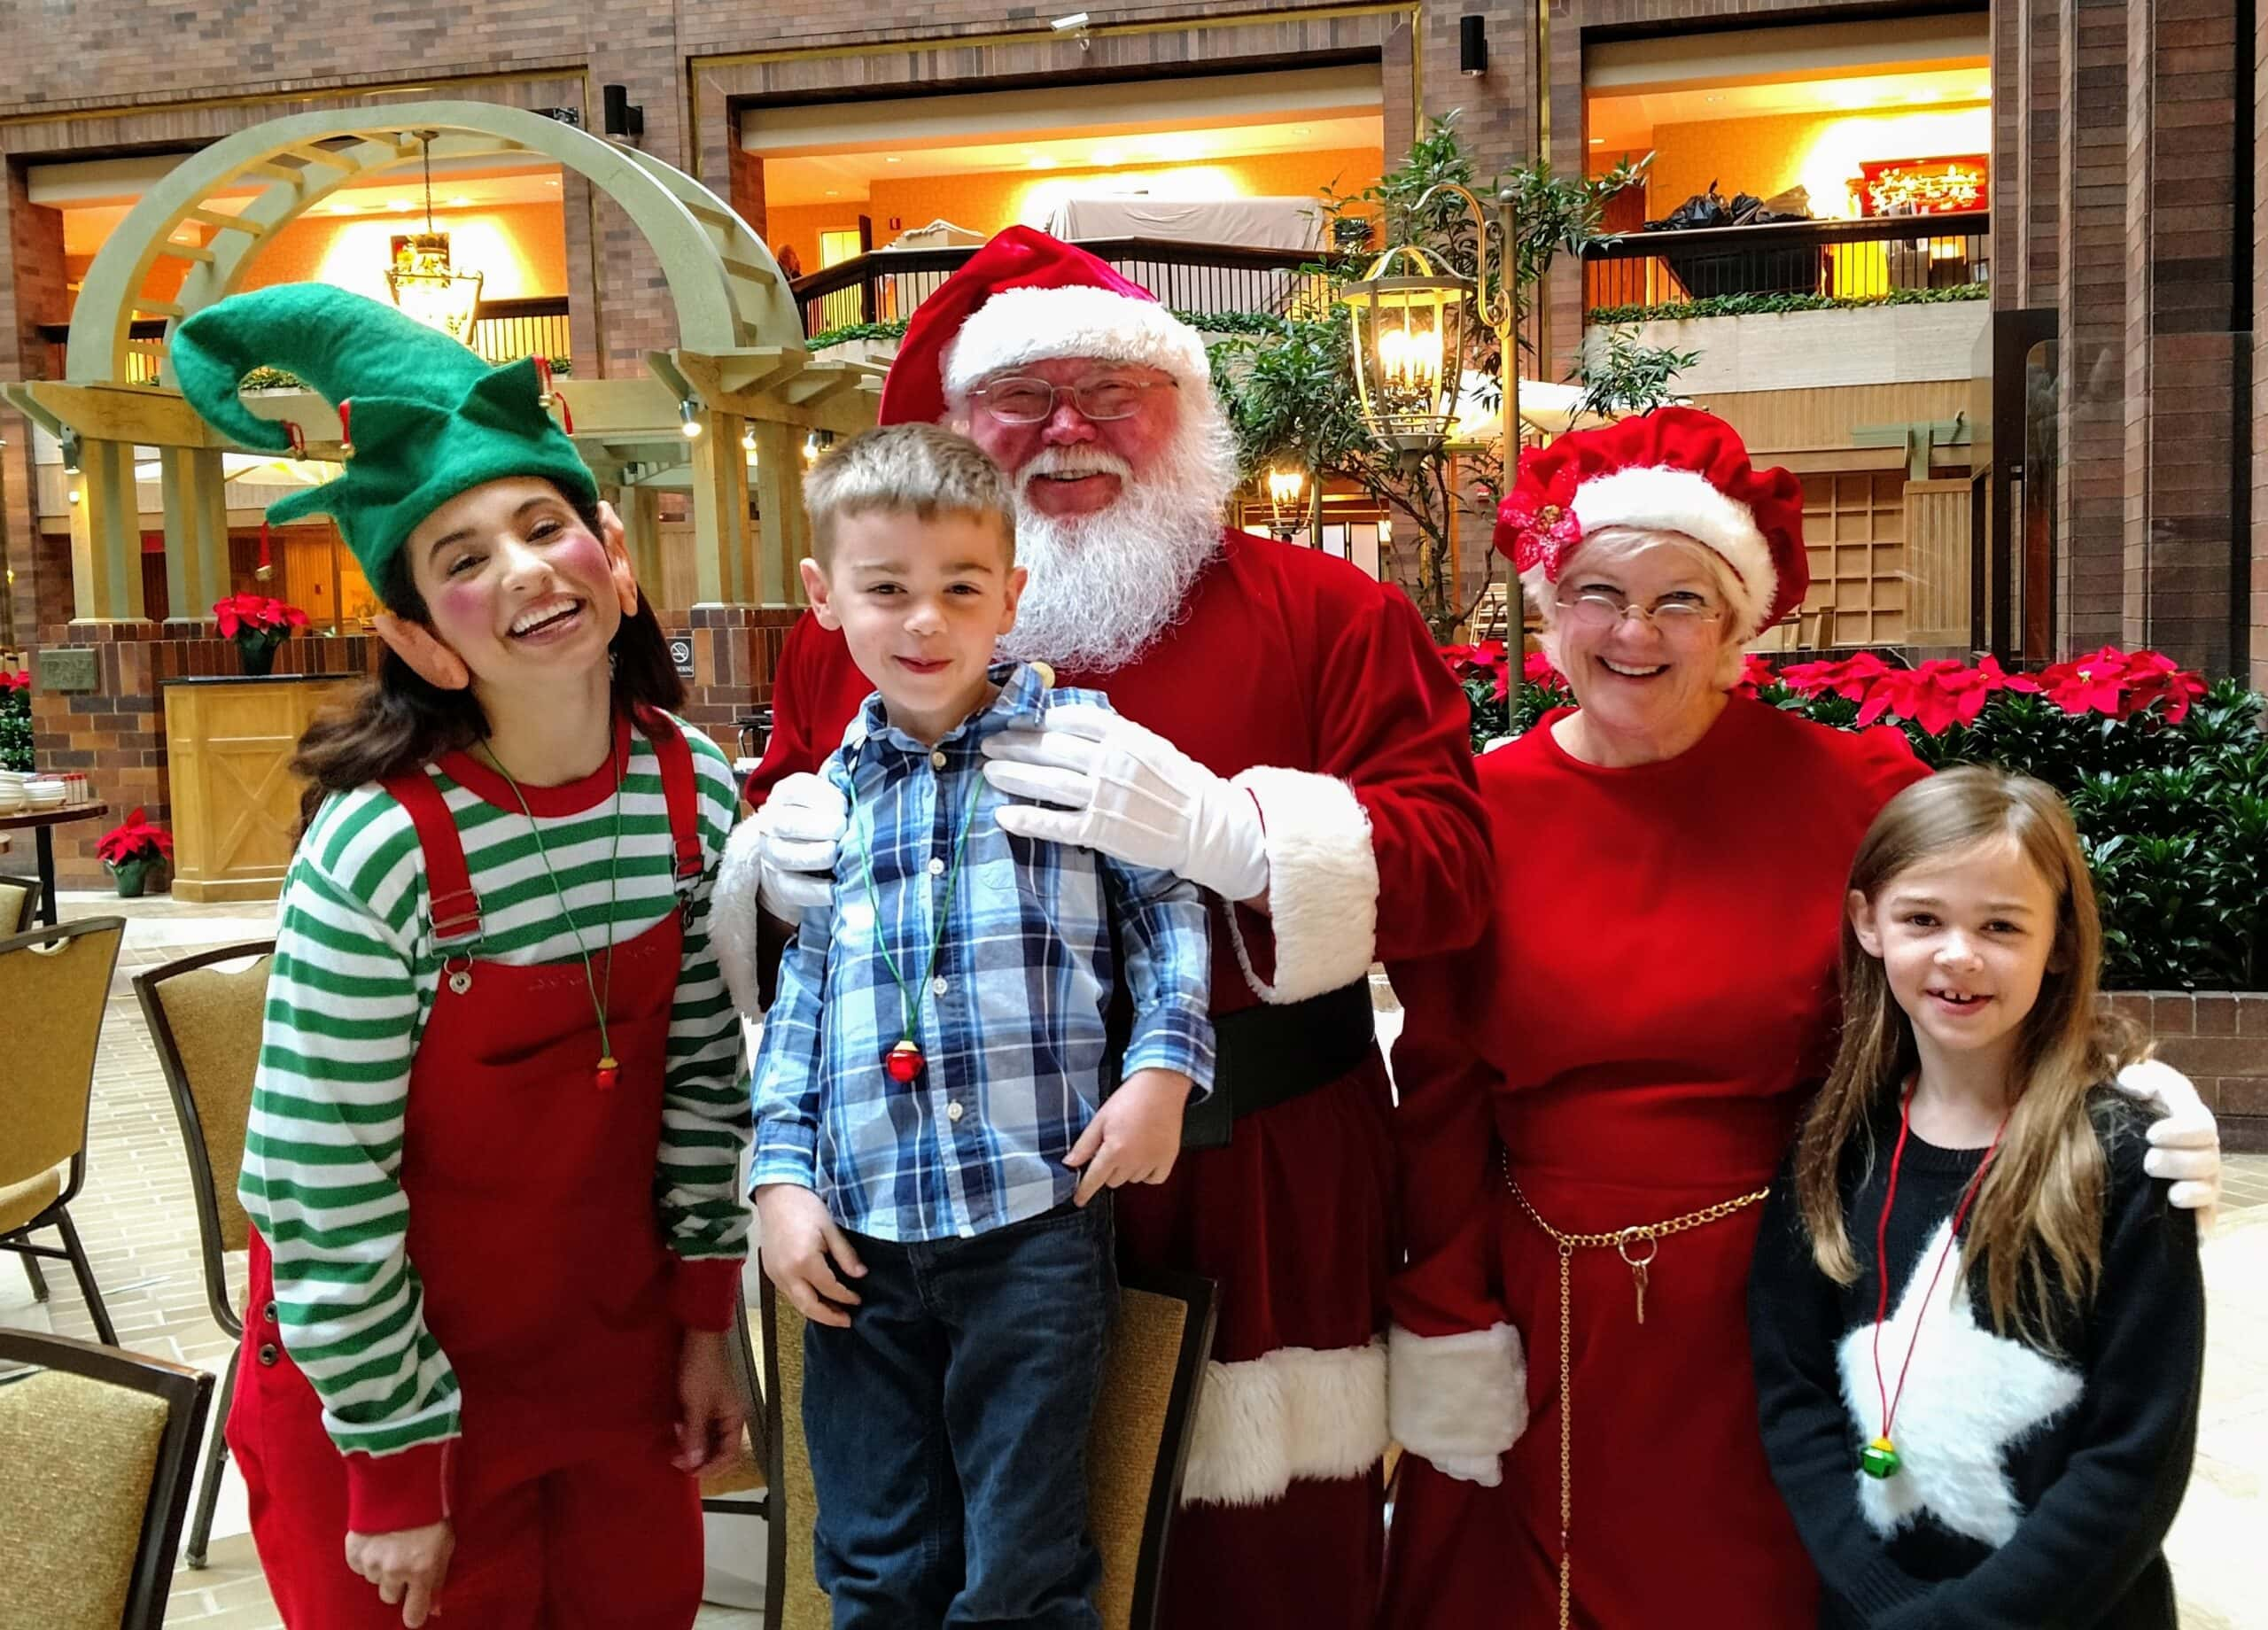 Kids with Santa Mrs Claus and an elf